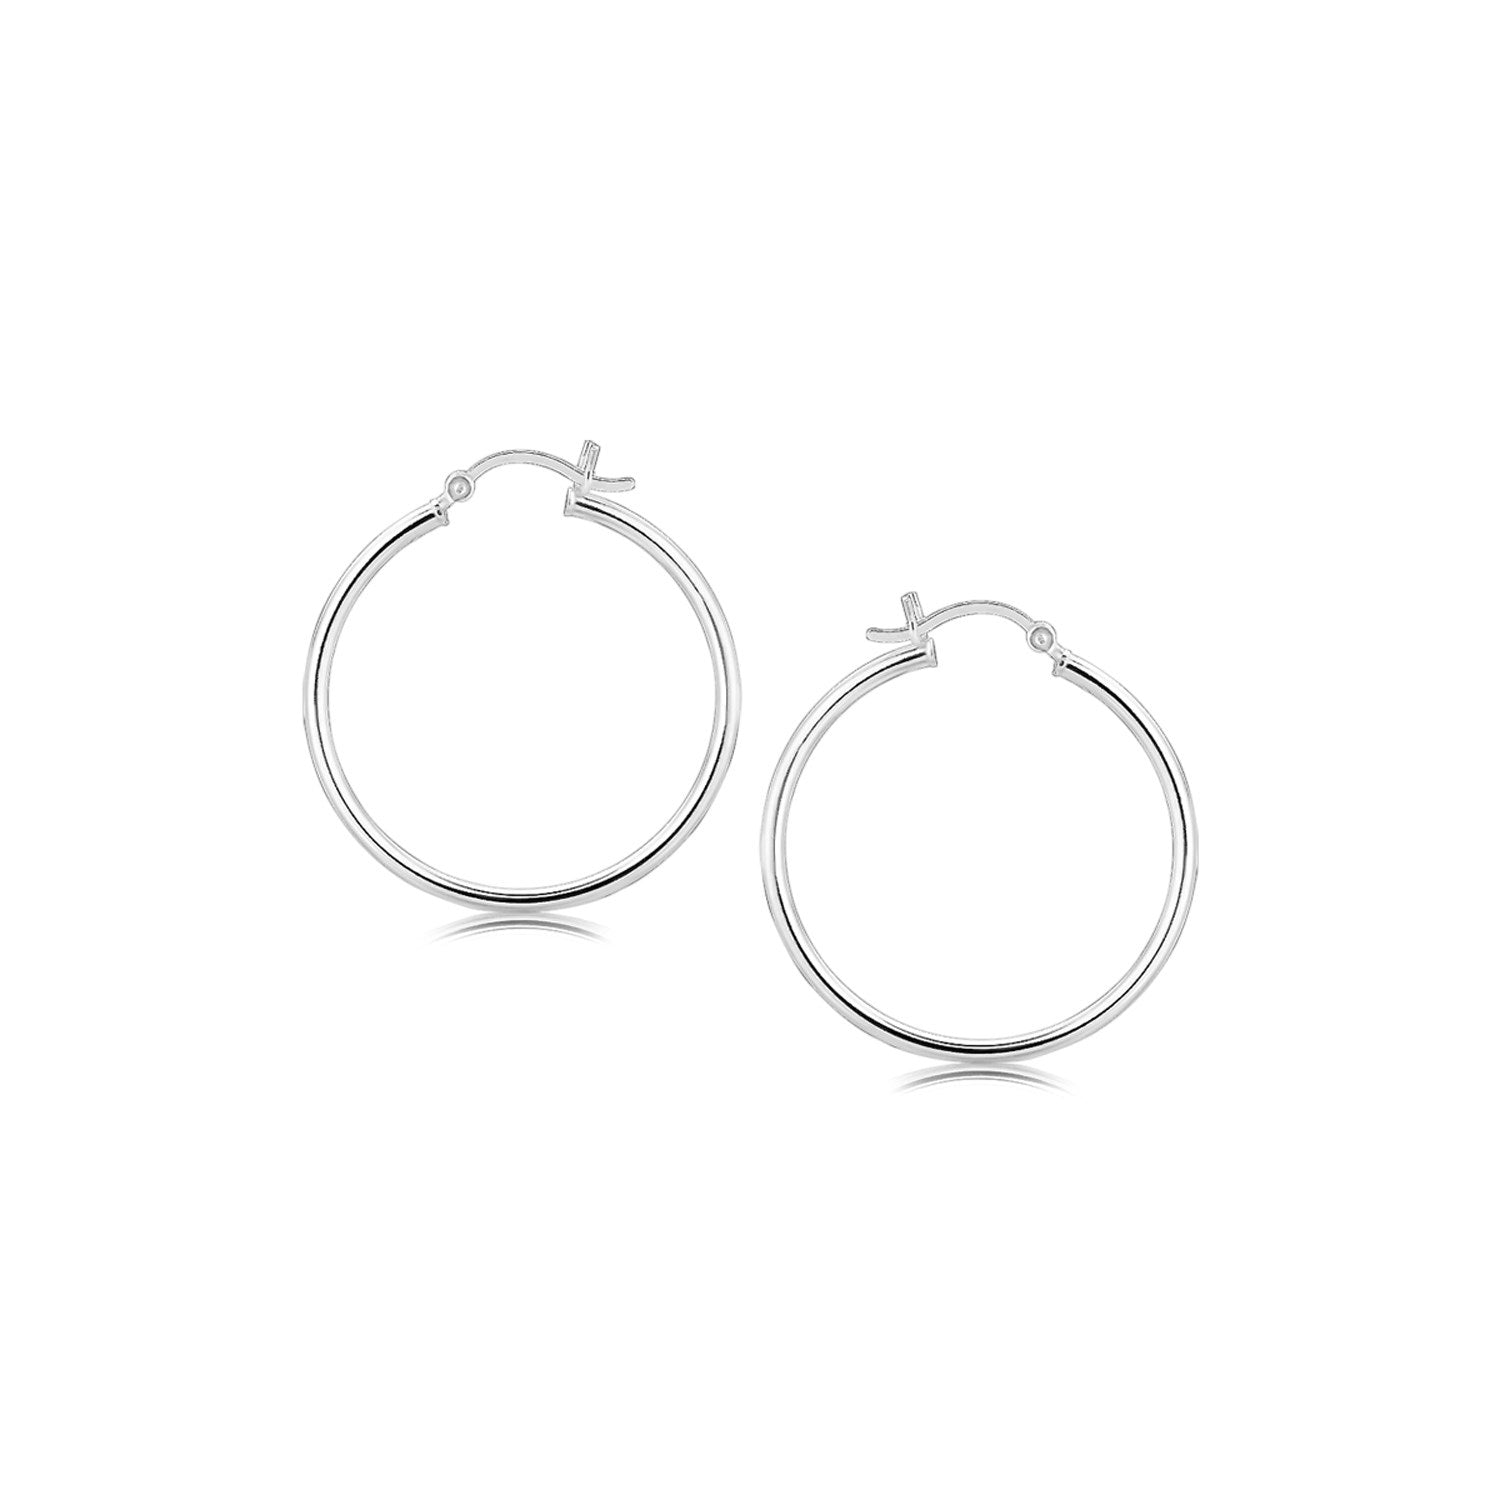 Sterling Silver Thin Polished Hoop Style Earrings with Rhodium Plating (30mm)